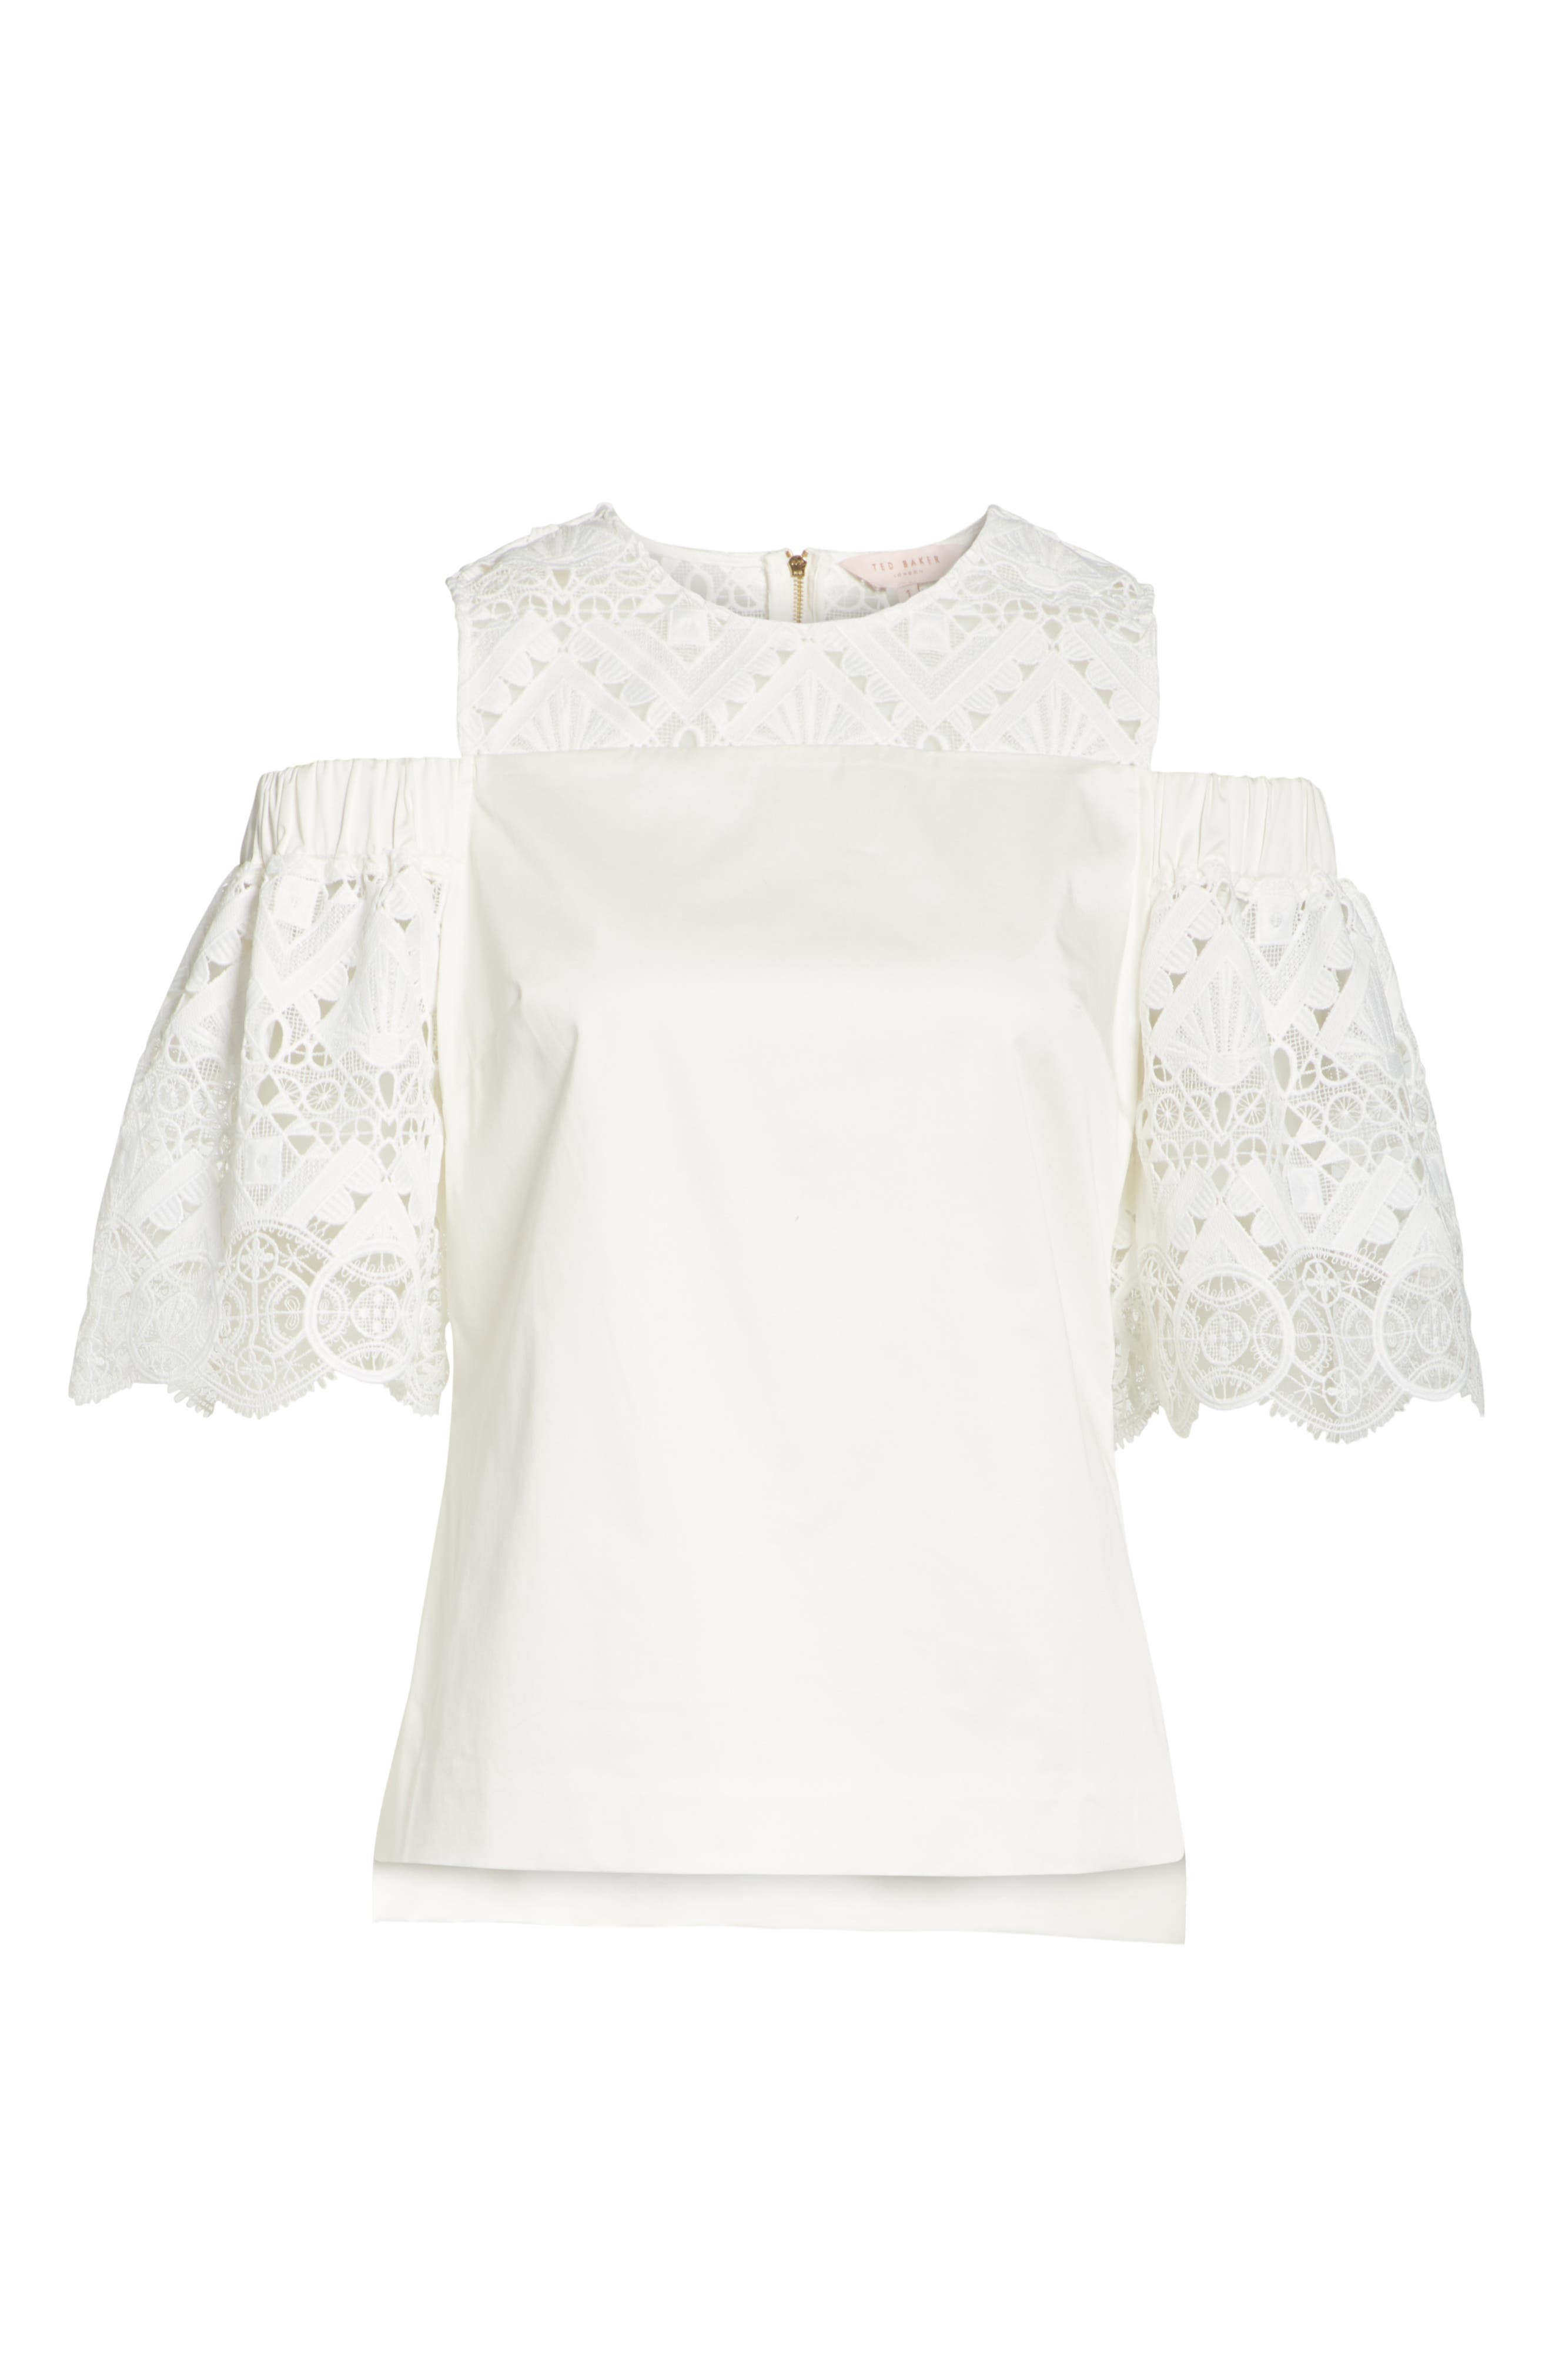 Taluah Mixed Lace Cold Shoulder Blouse,                             Alternate thumbnail 6, color,                             White